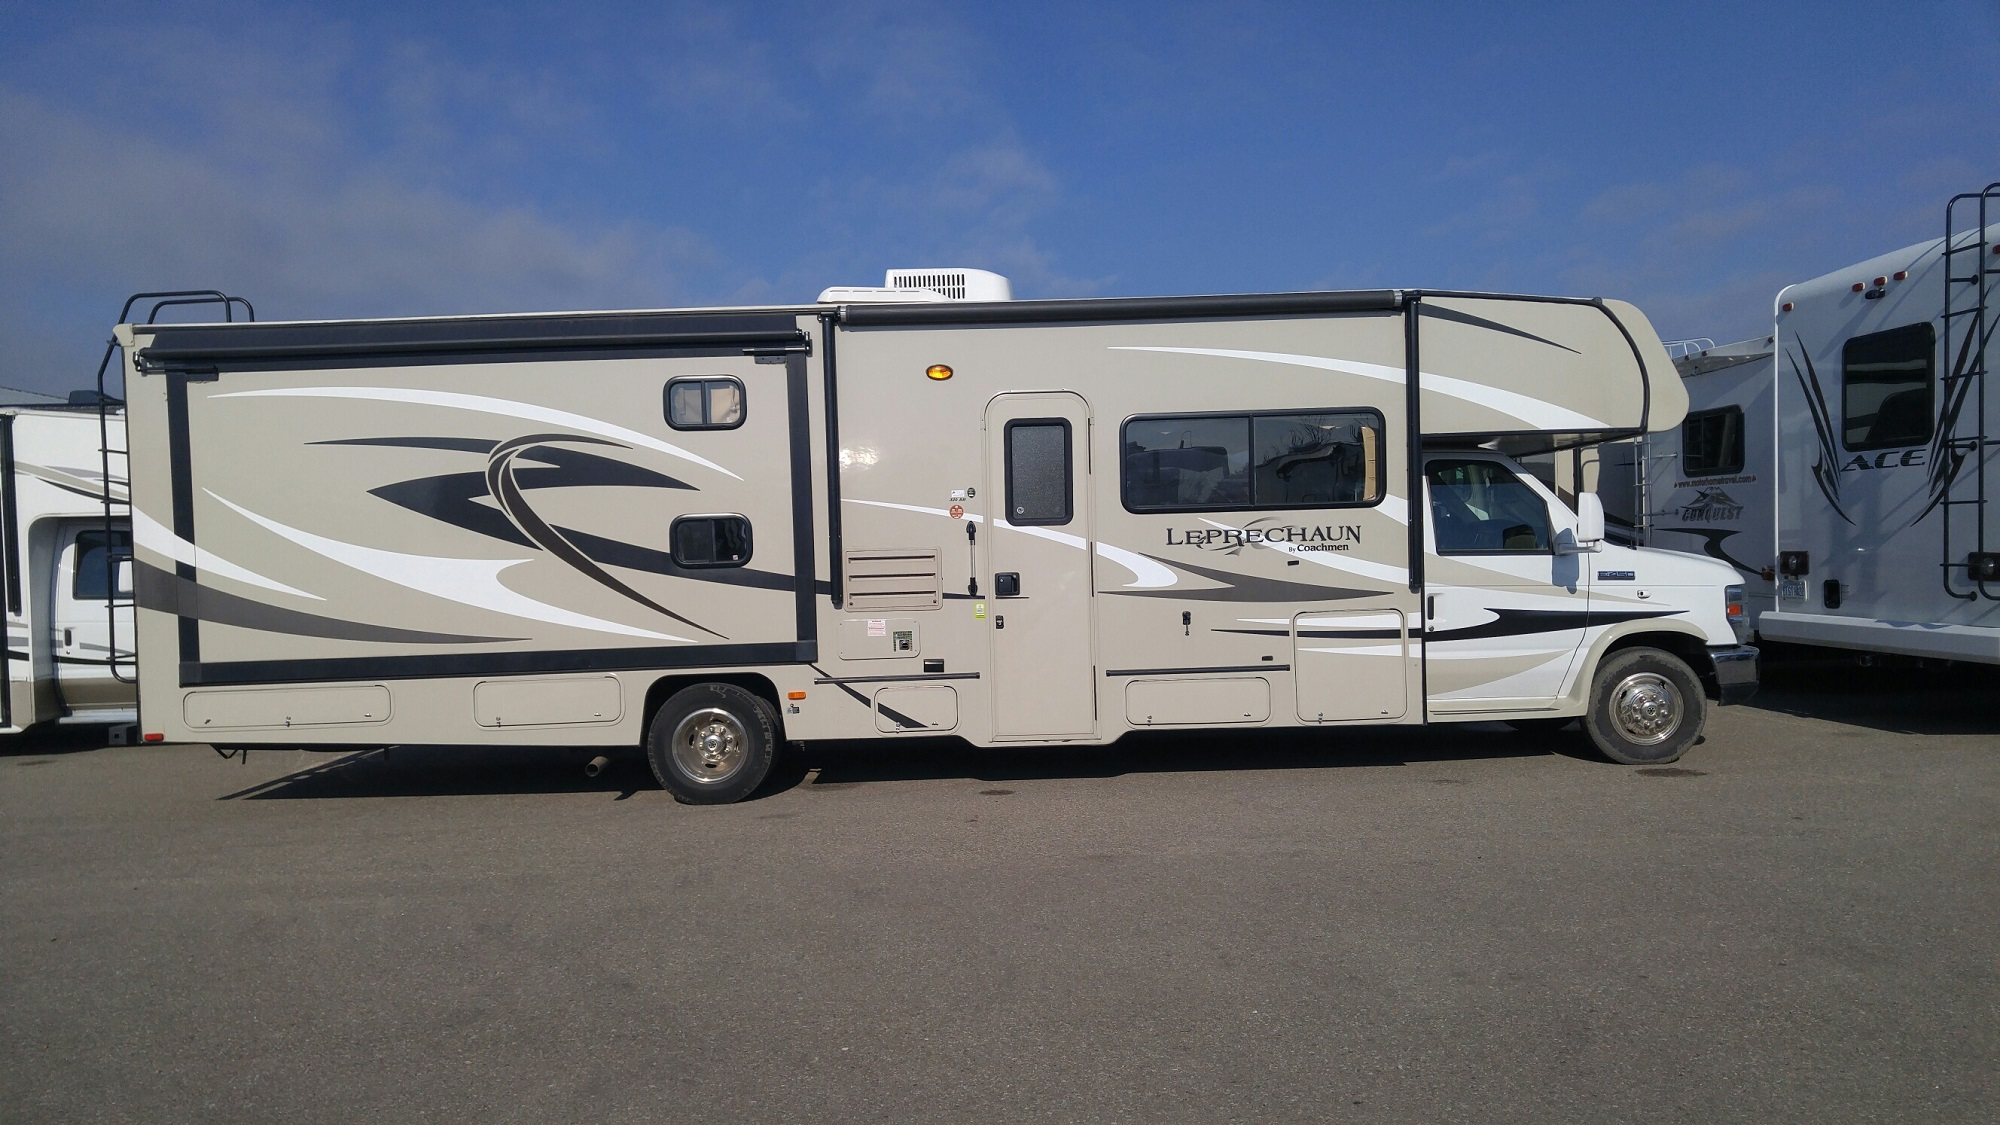 Mhc class c 30 31 39 rv rental canada for Motor homes to rent